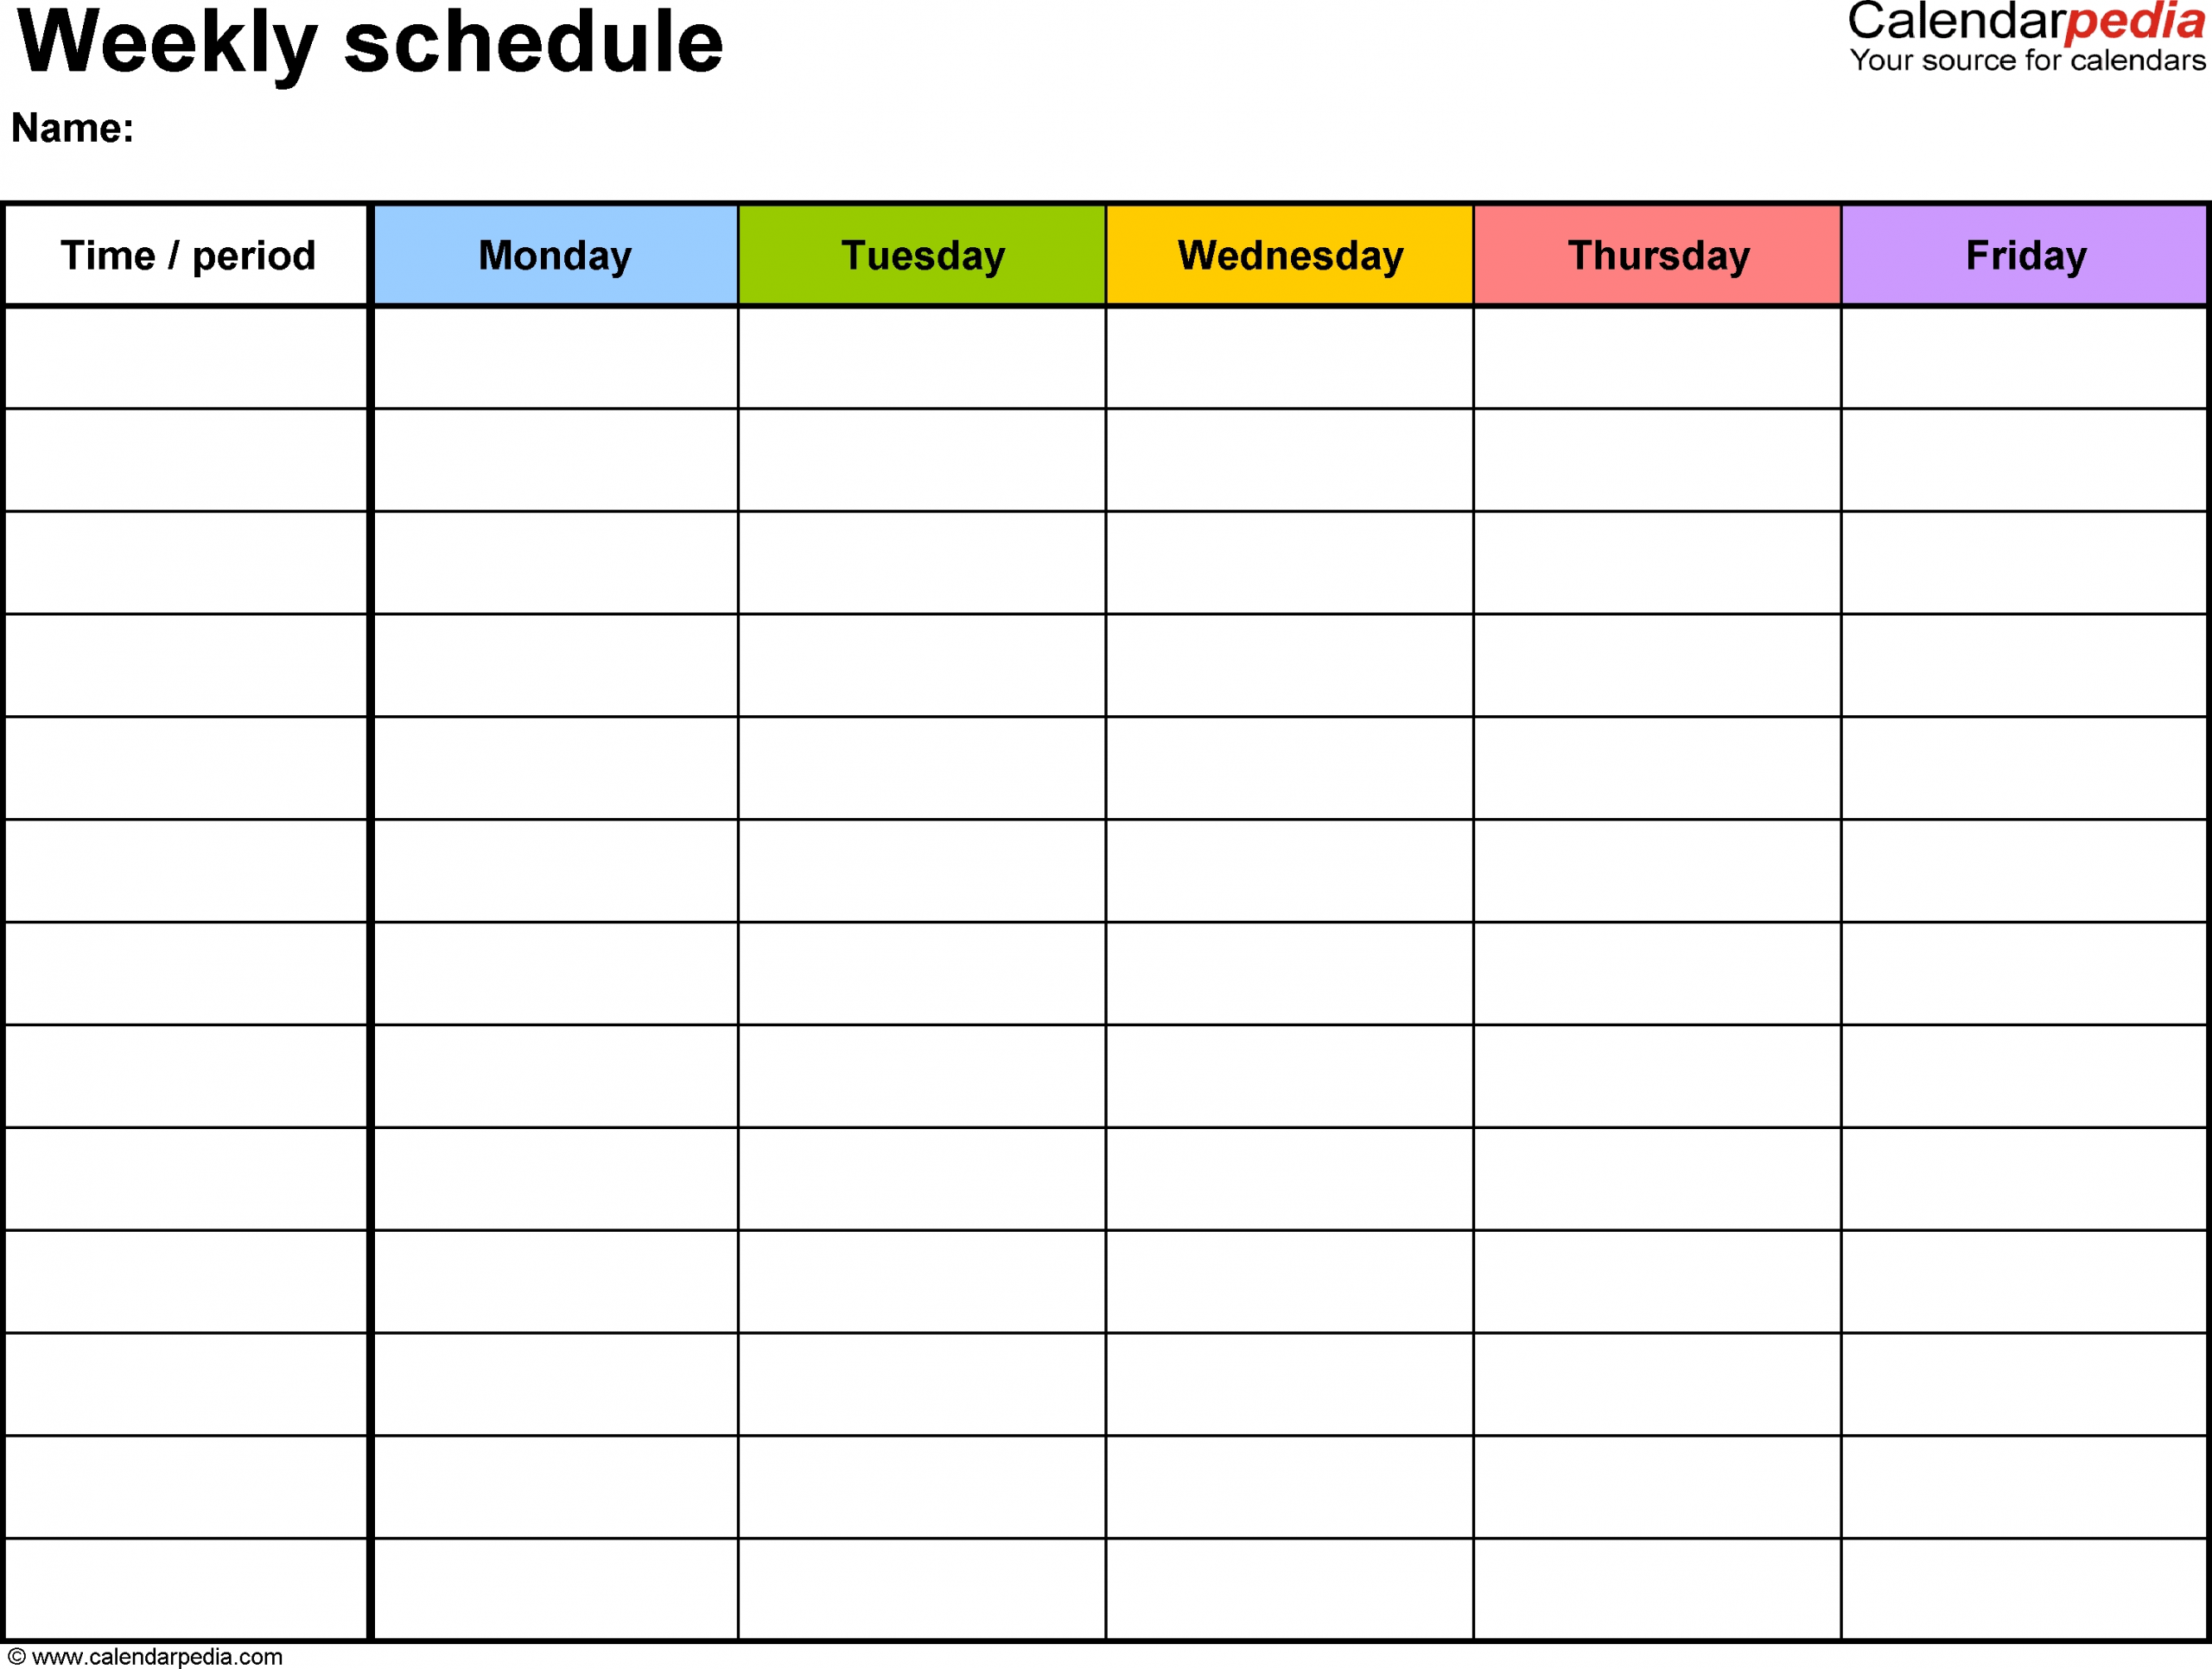 Free Weekly Schedule Templates For Word - 18 Templates in Monday Through Friday Schedule Printable